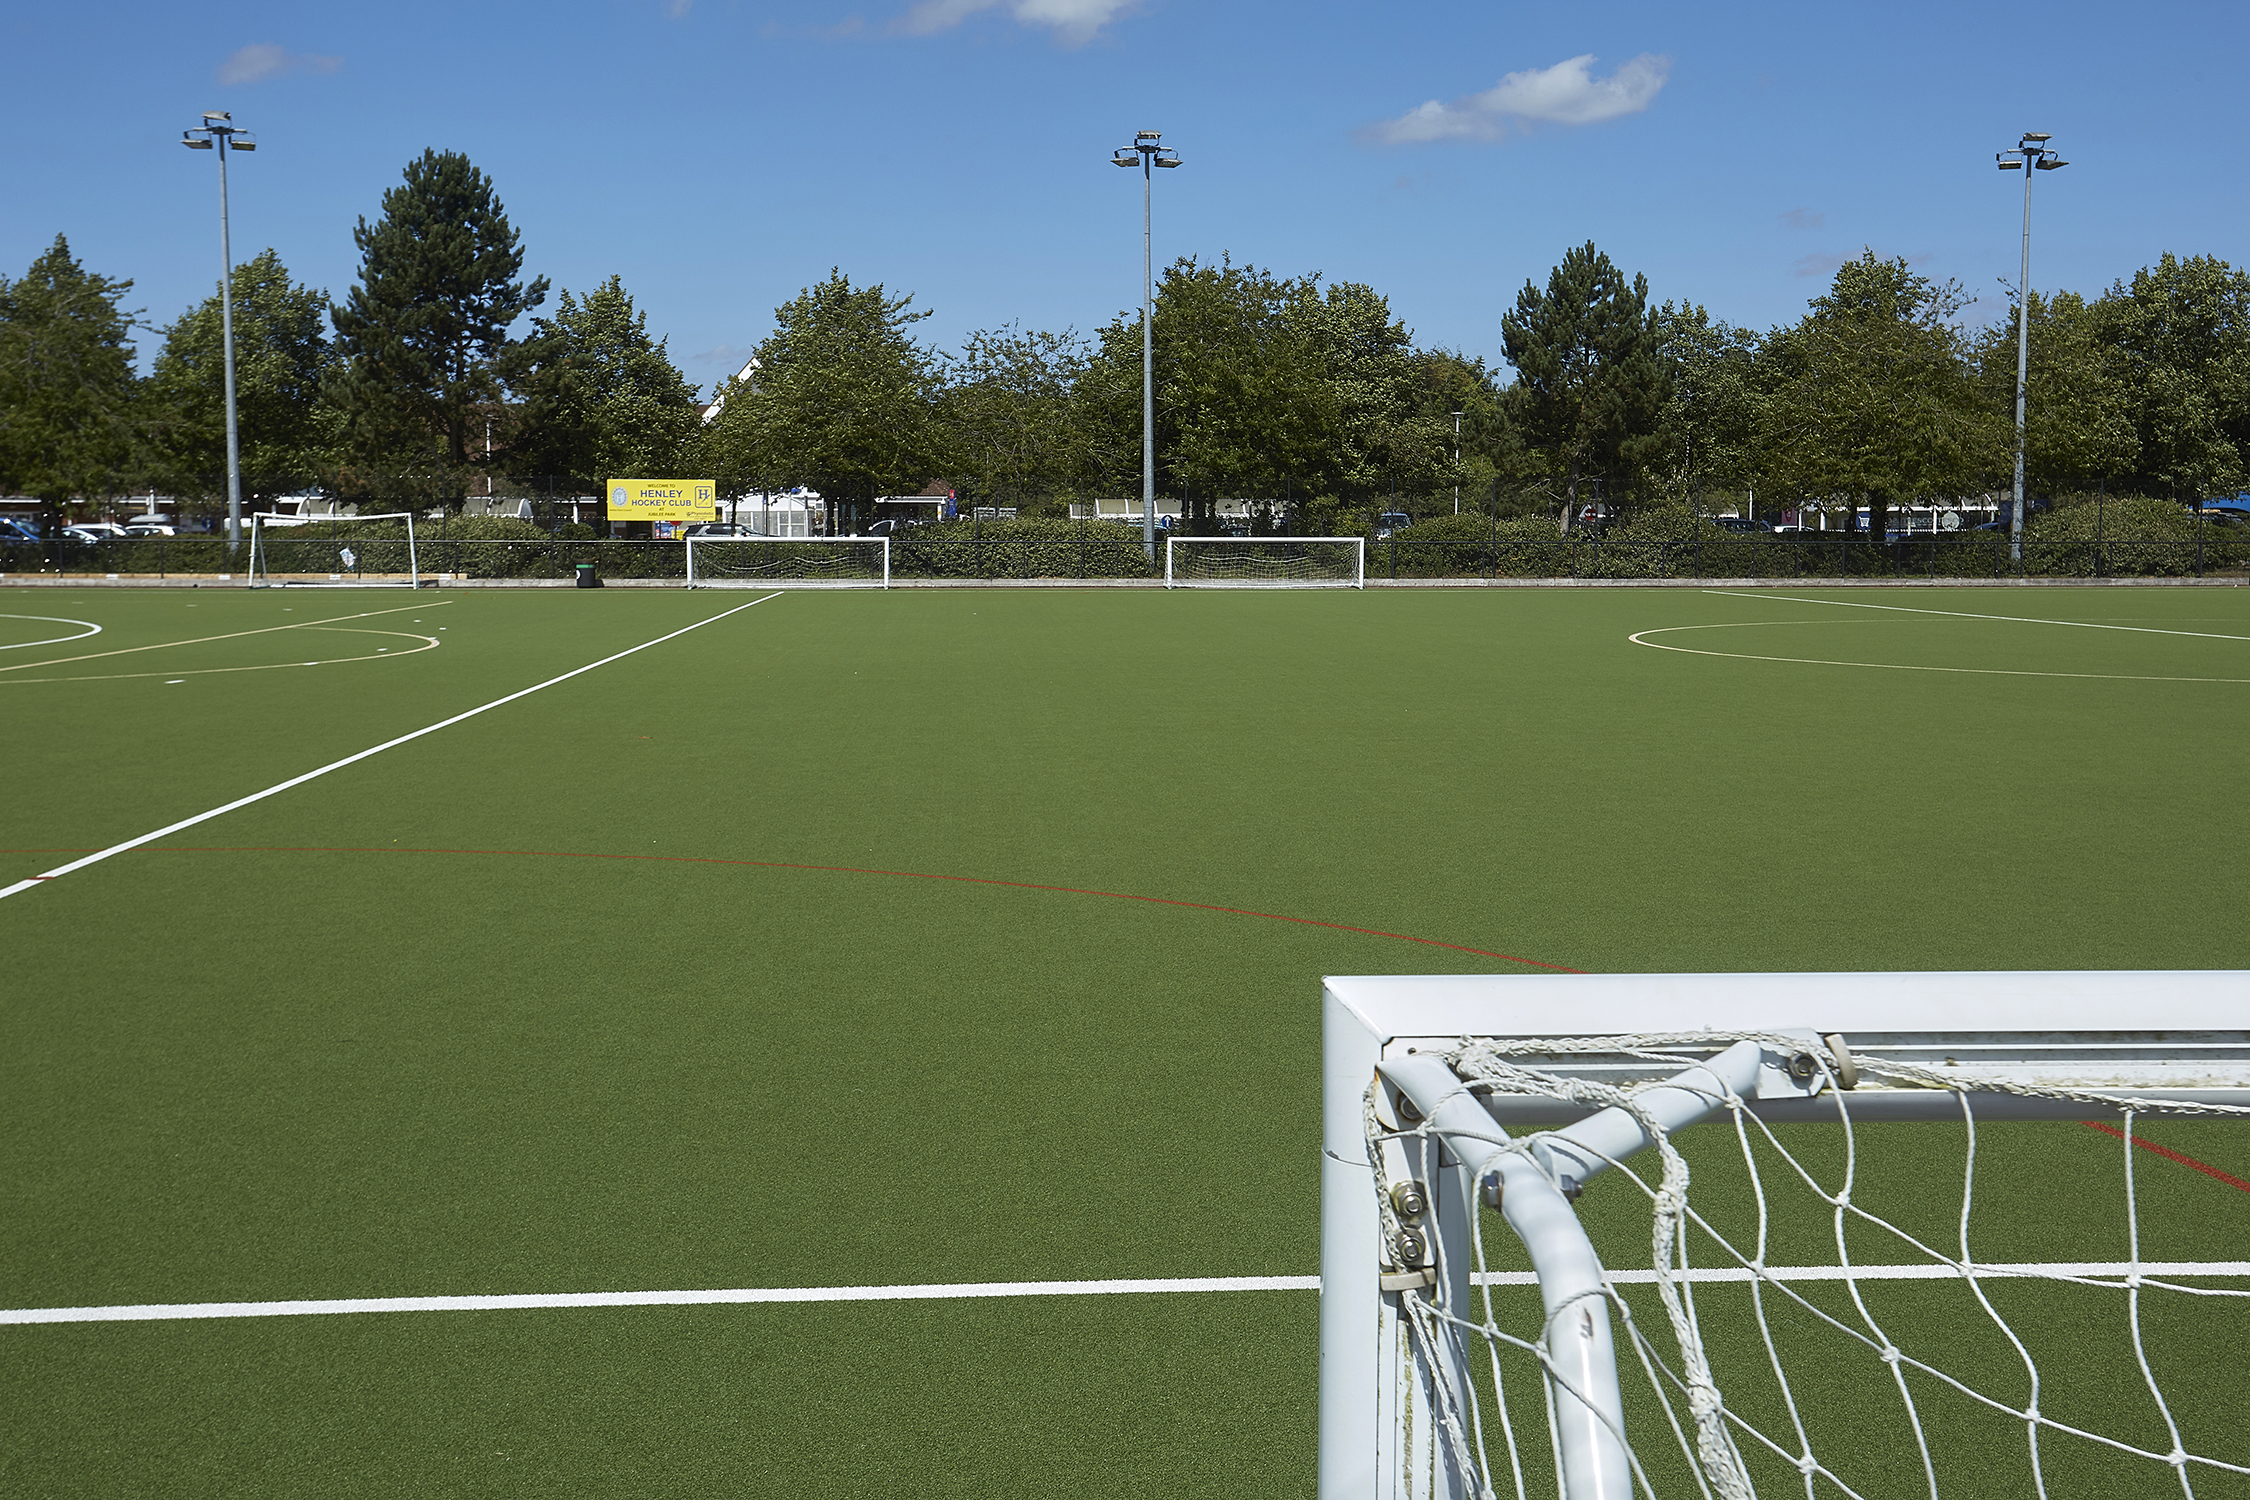 Henley Town Council - Sports field facilities in Henley